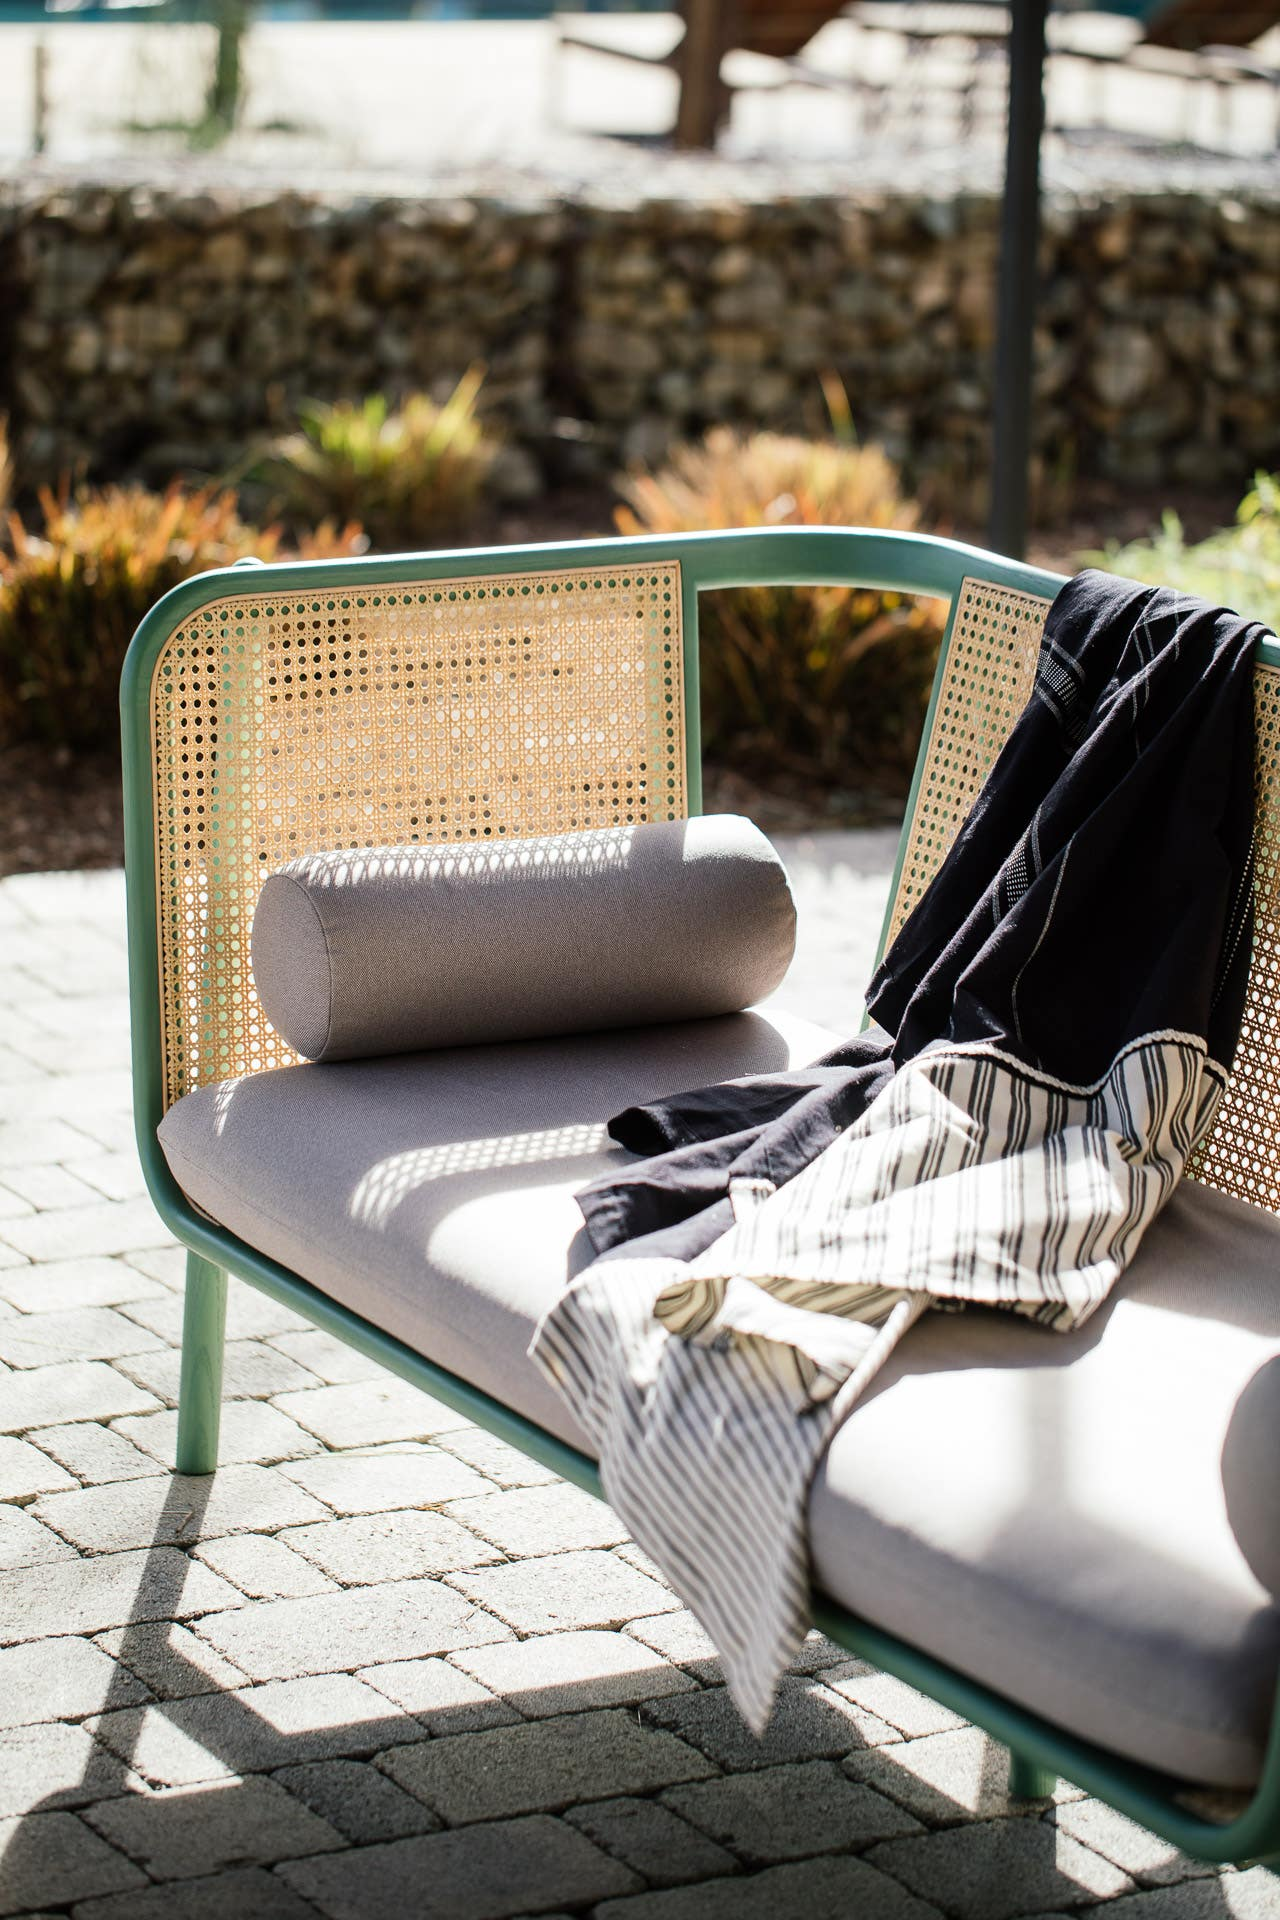 Industry West cane Hem Sofa with Favor throw on patio in Ojai, California